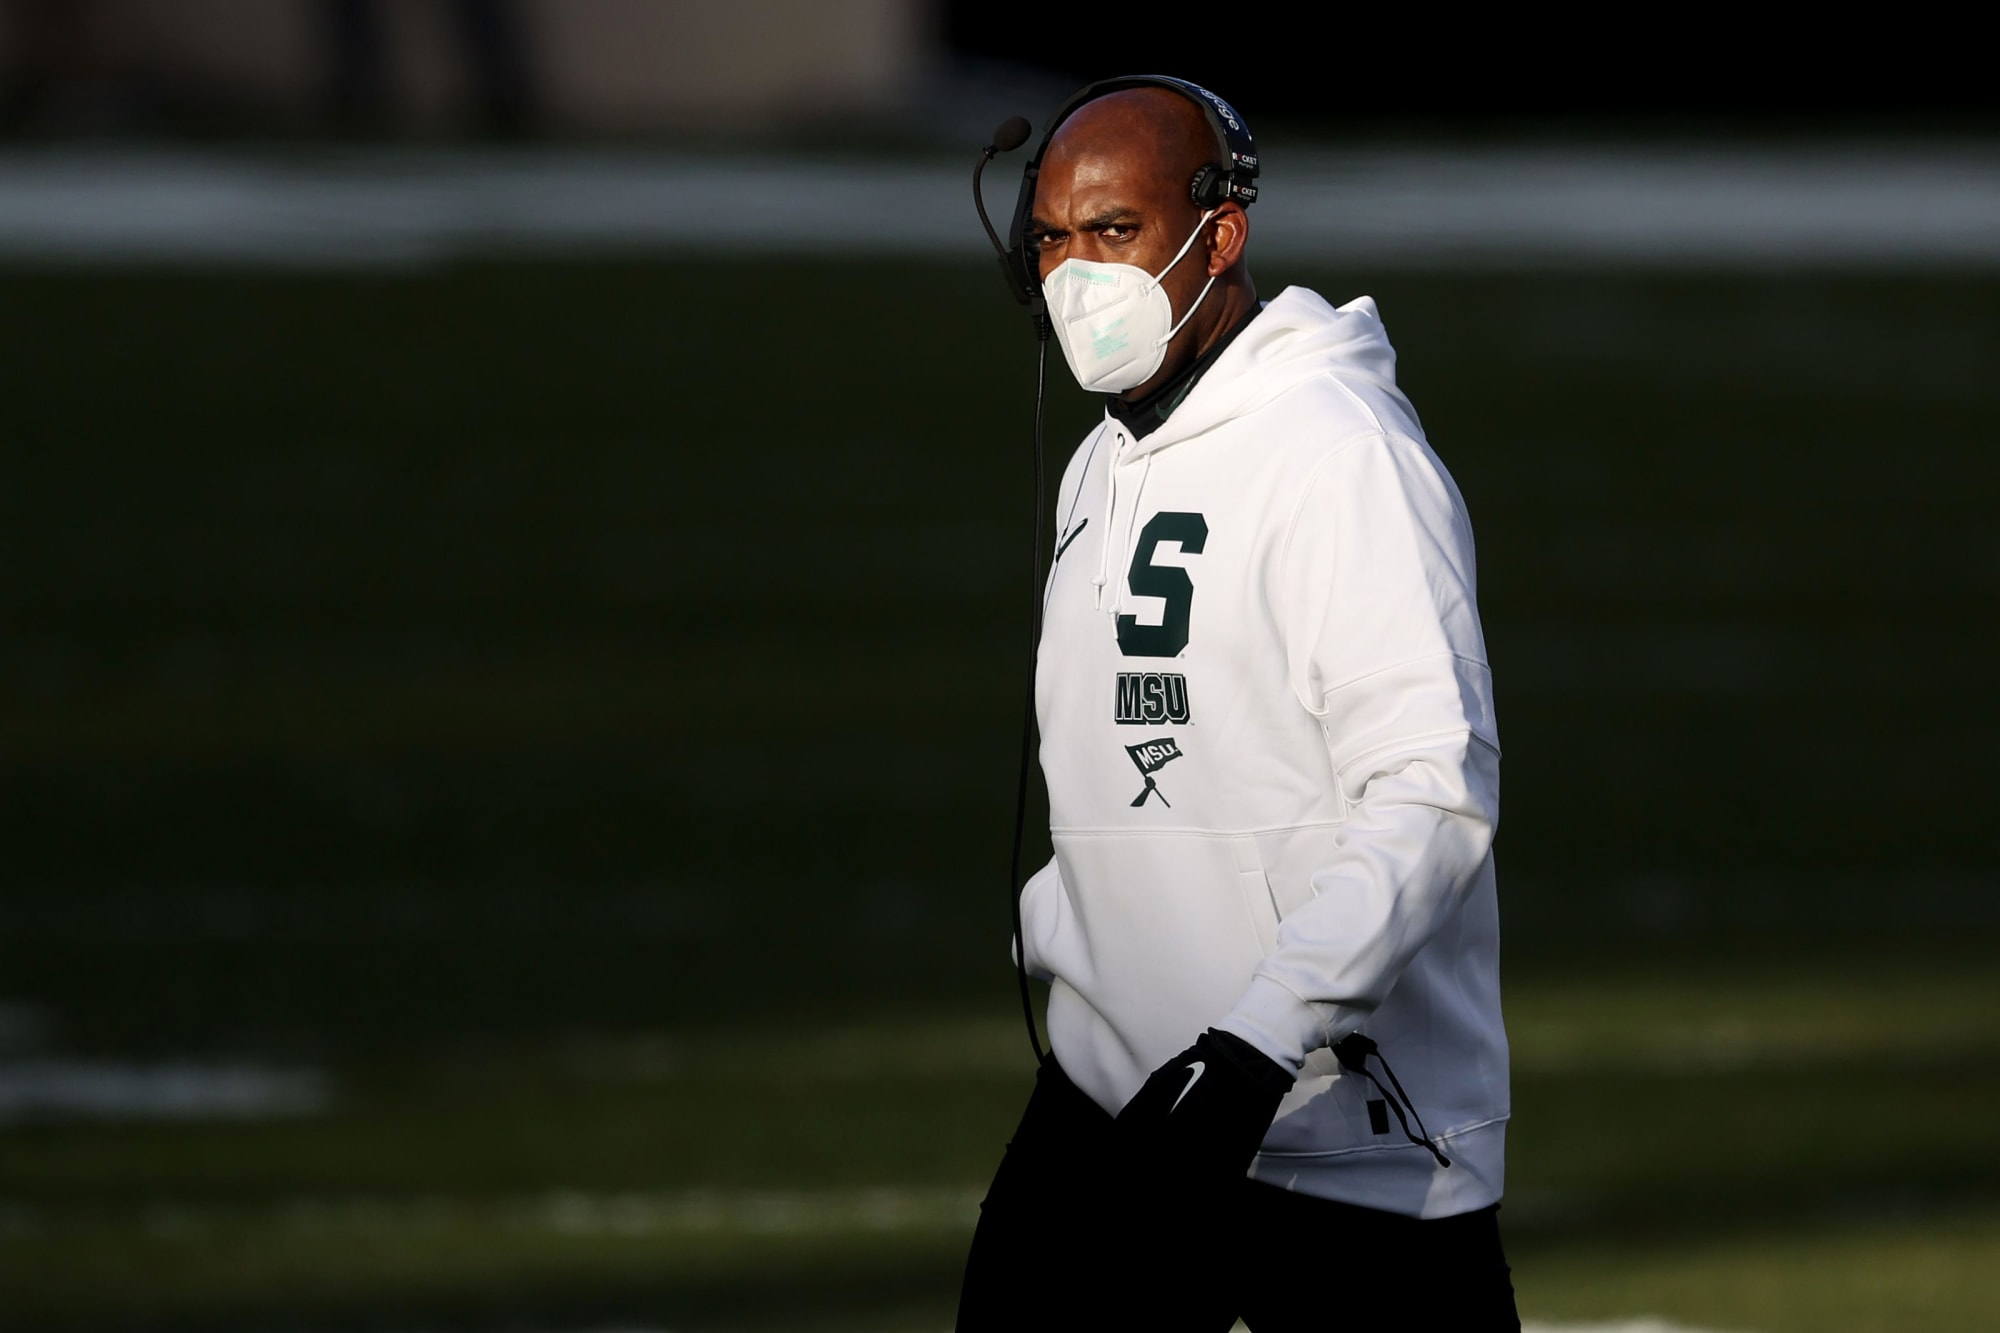 Michigan State football's 2022 recruiting class jumps into top 25